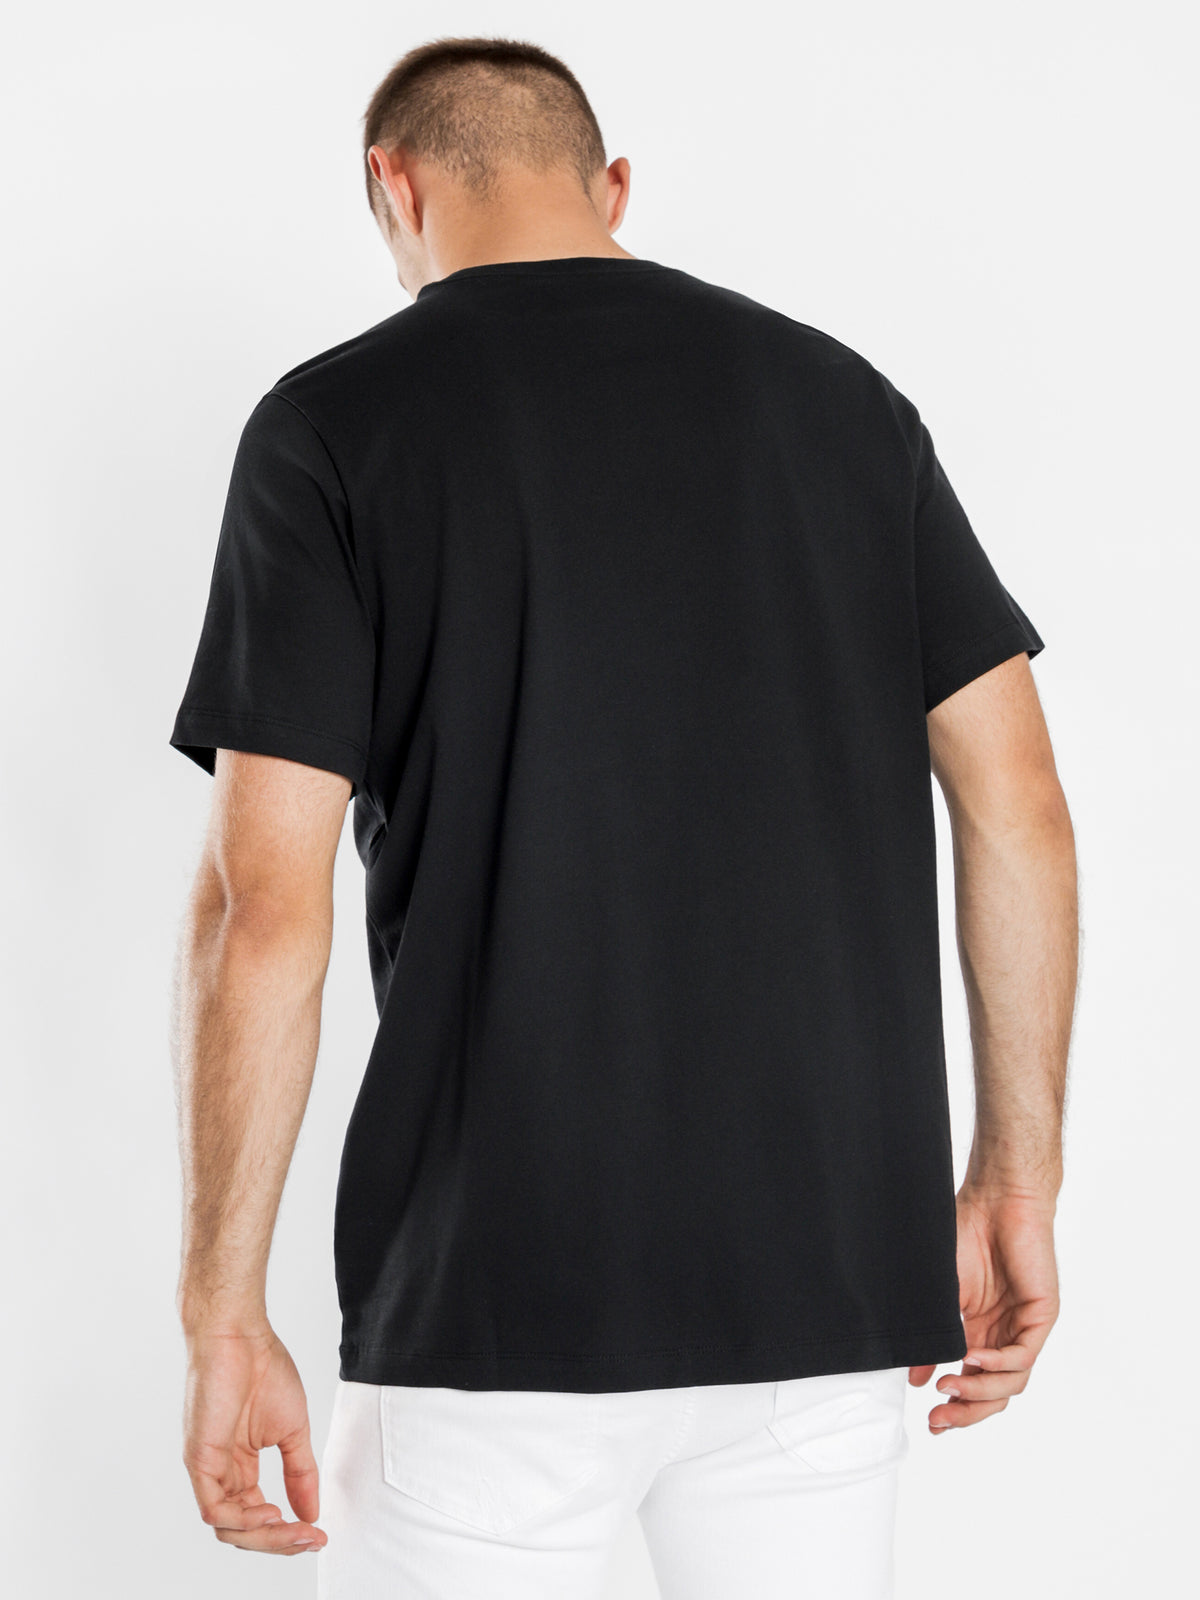 Sportswear Heritage T-Shirt in Black